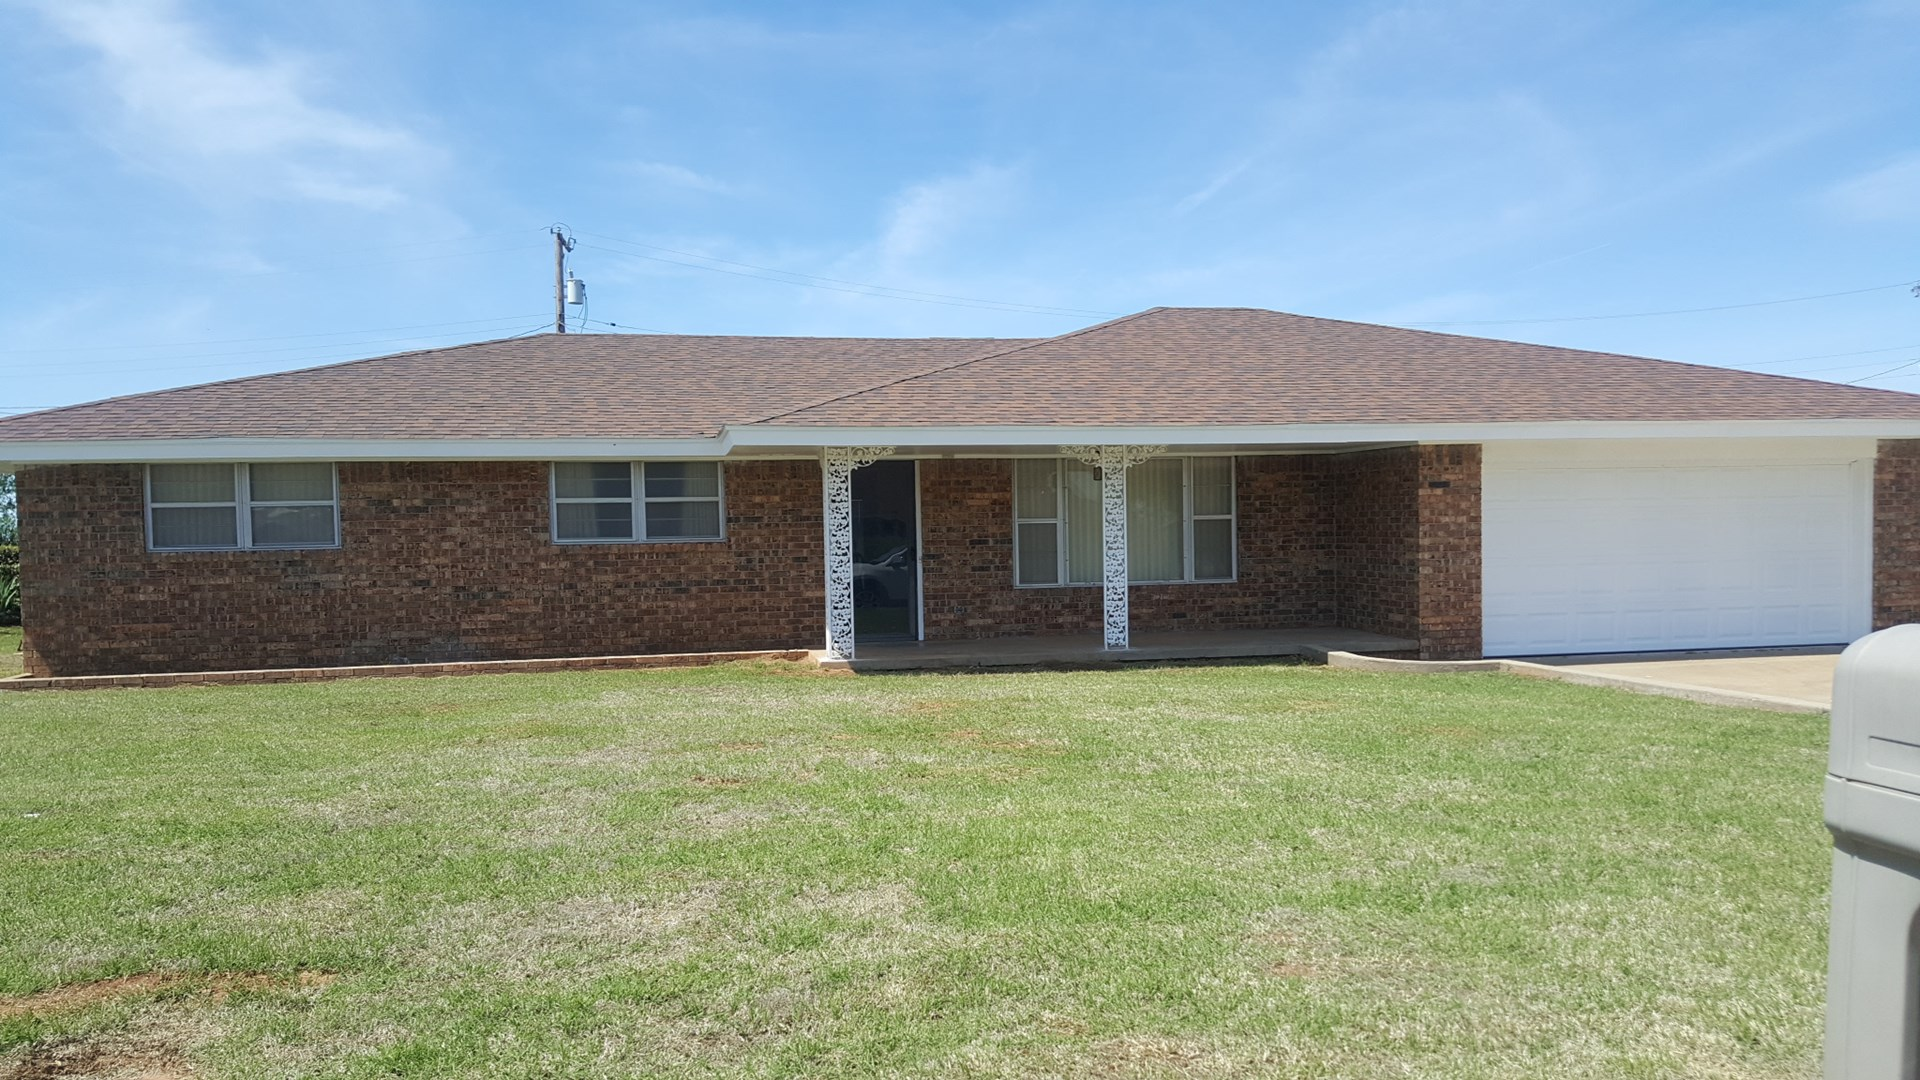 Carnegie, OK - Home for Sale - 3 bed, 2 bath